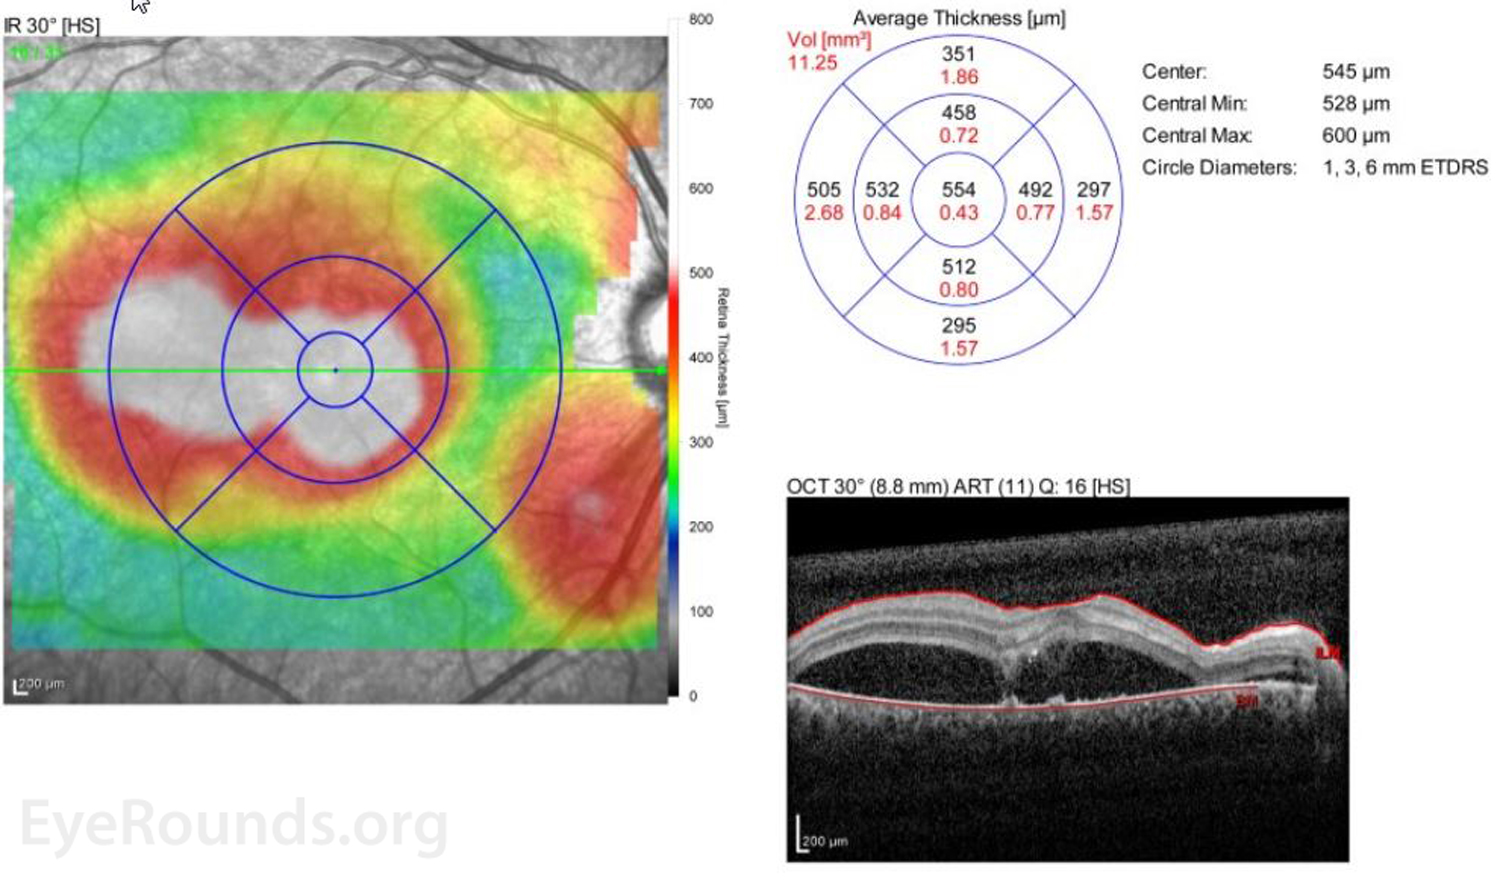 Bilateral serous retinal detachments from acute